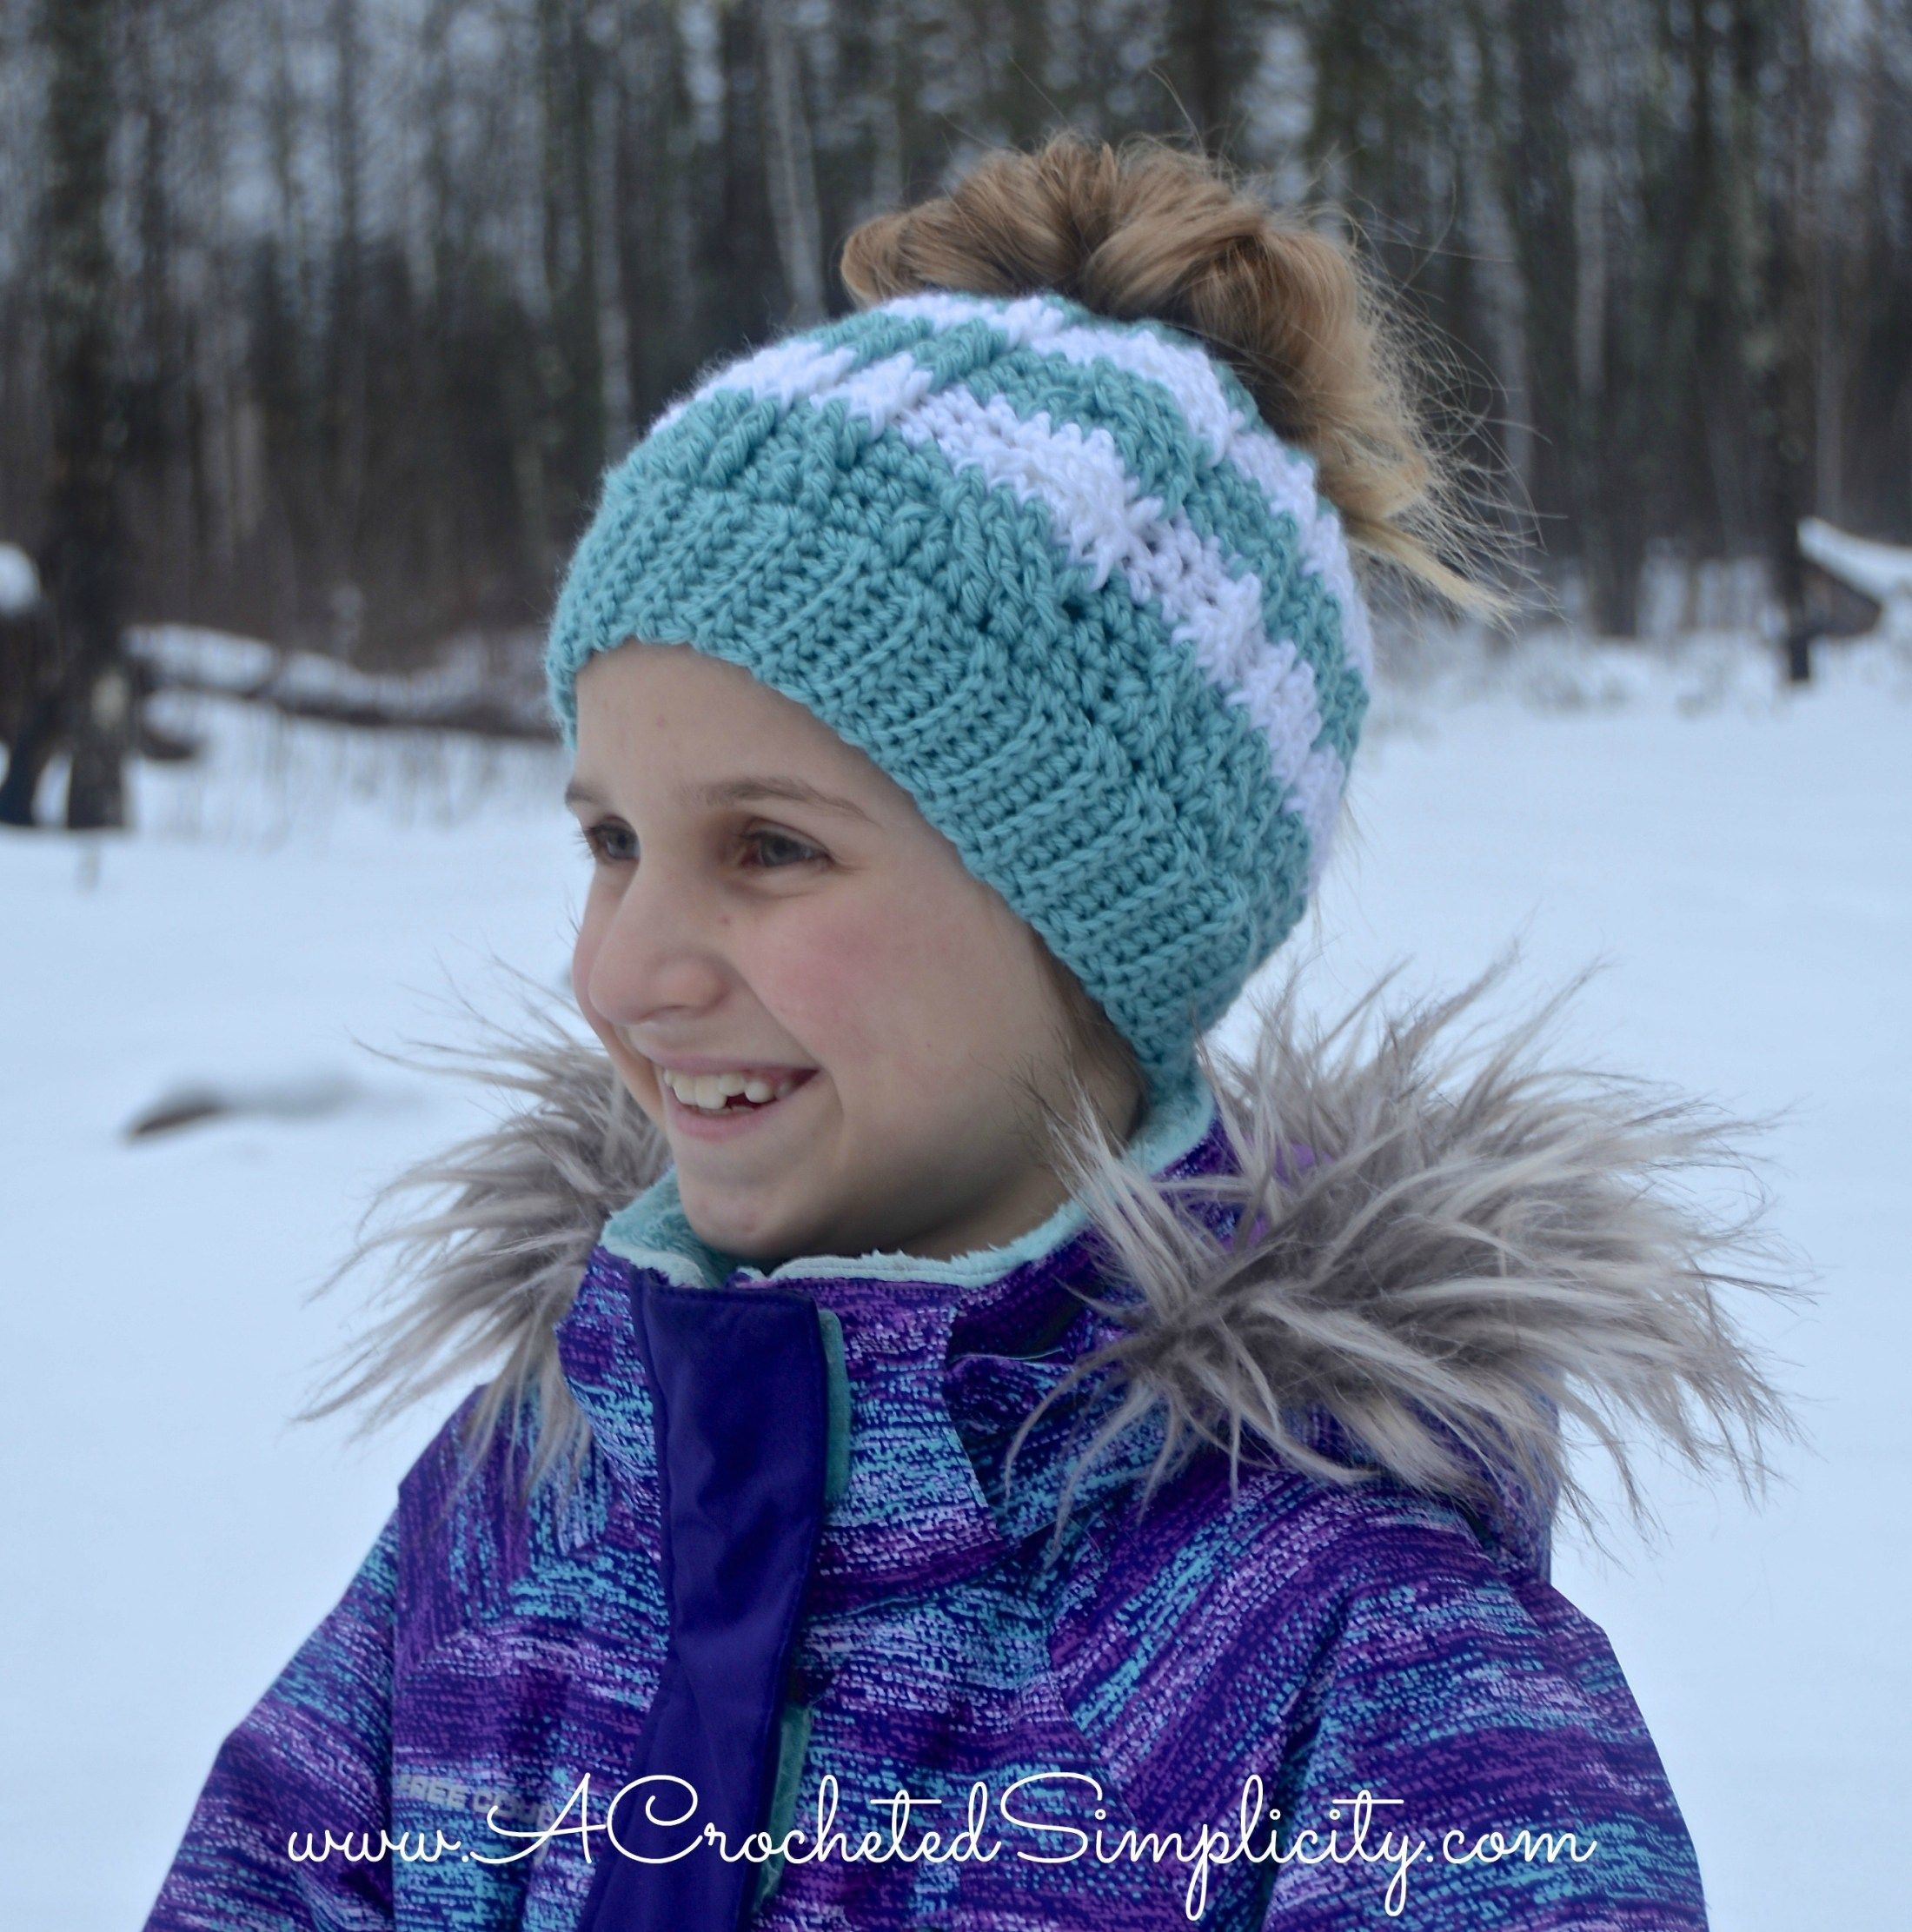 #simplicity #crocheted #included #tutorial #crochet #pattern #cabled #messy #sizes #video #free #kids #bun #hat #byFree Crochet Pattern - Crochet Cabled Messy Bun (Kids' Sizes) (video tutorial included Free Crochet Pattern - Cabled Messy Bun Hat (video tutorial included) by A Crocheted SimplicityFree Crochet Pattern - Cabled Messy Bun Hat (video tutorial included) by A Crocheted Simplicity #kidsmessyhats